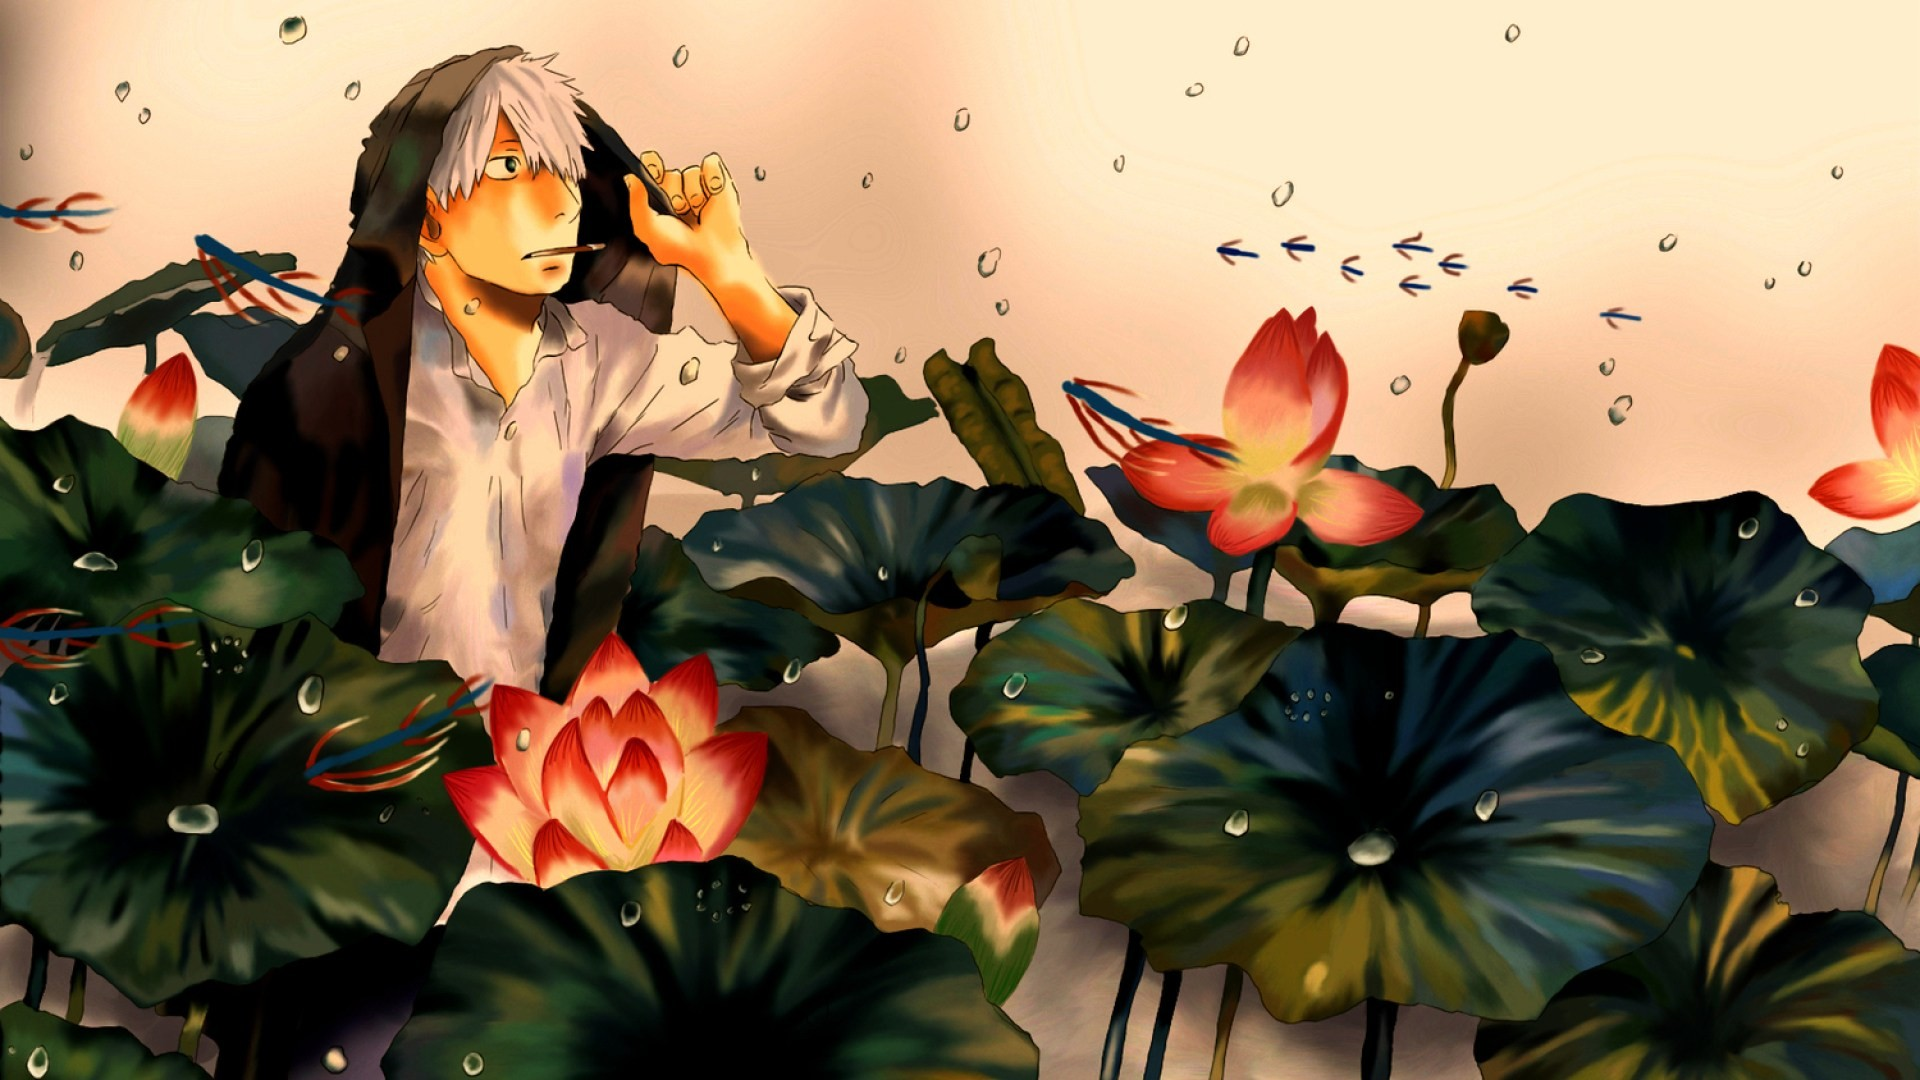 Res: 1920x1080, Mushishi Ginko 1080p HD Wallpaper Background